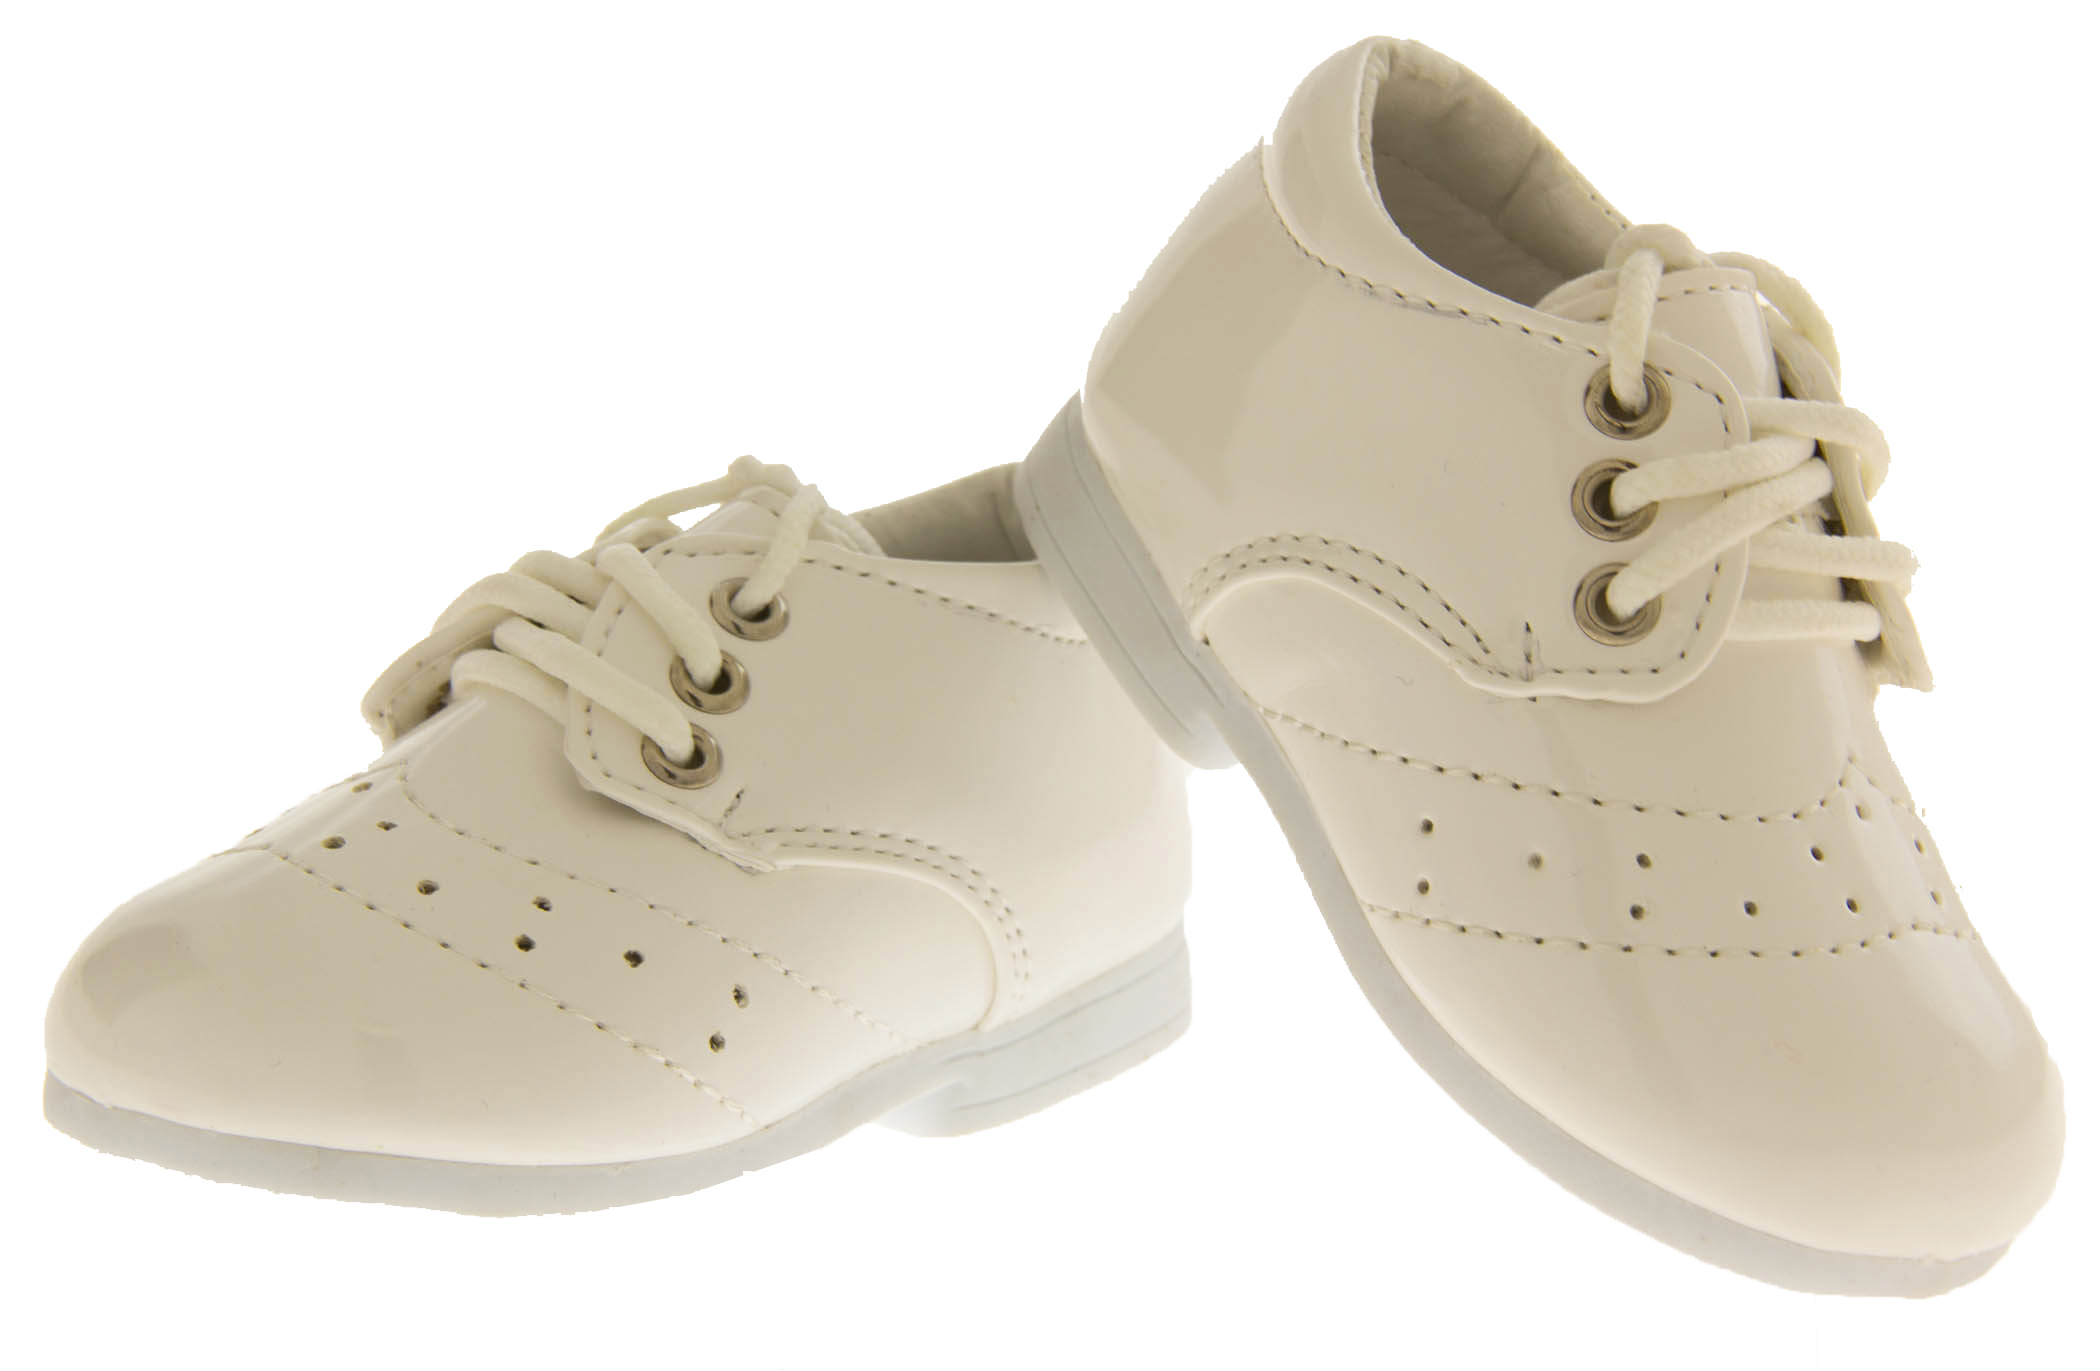 Sentinel Baby Boy Infant Toddler White Formal Lace Up Shoes Christening  Party Sz Size 0-3 00688e564